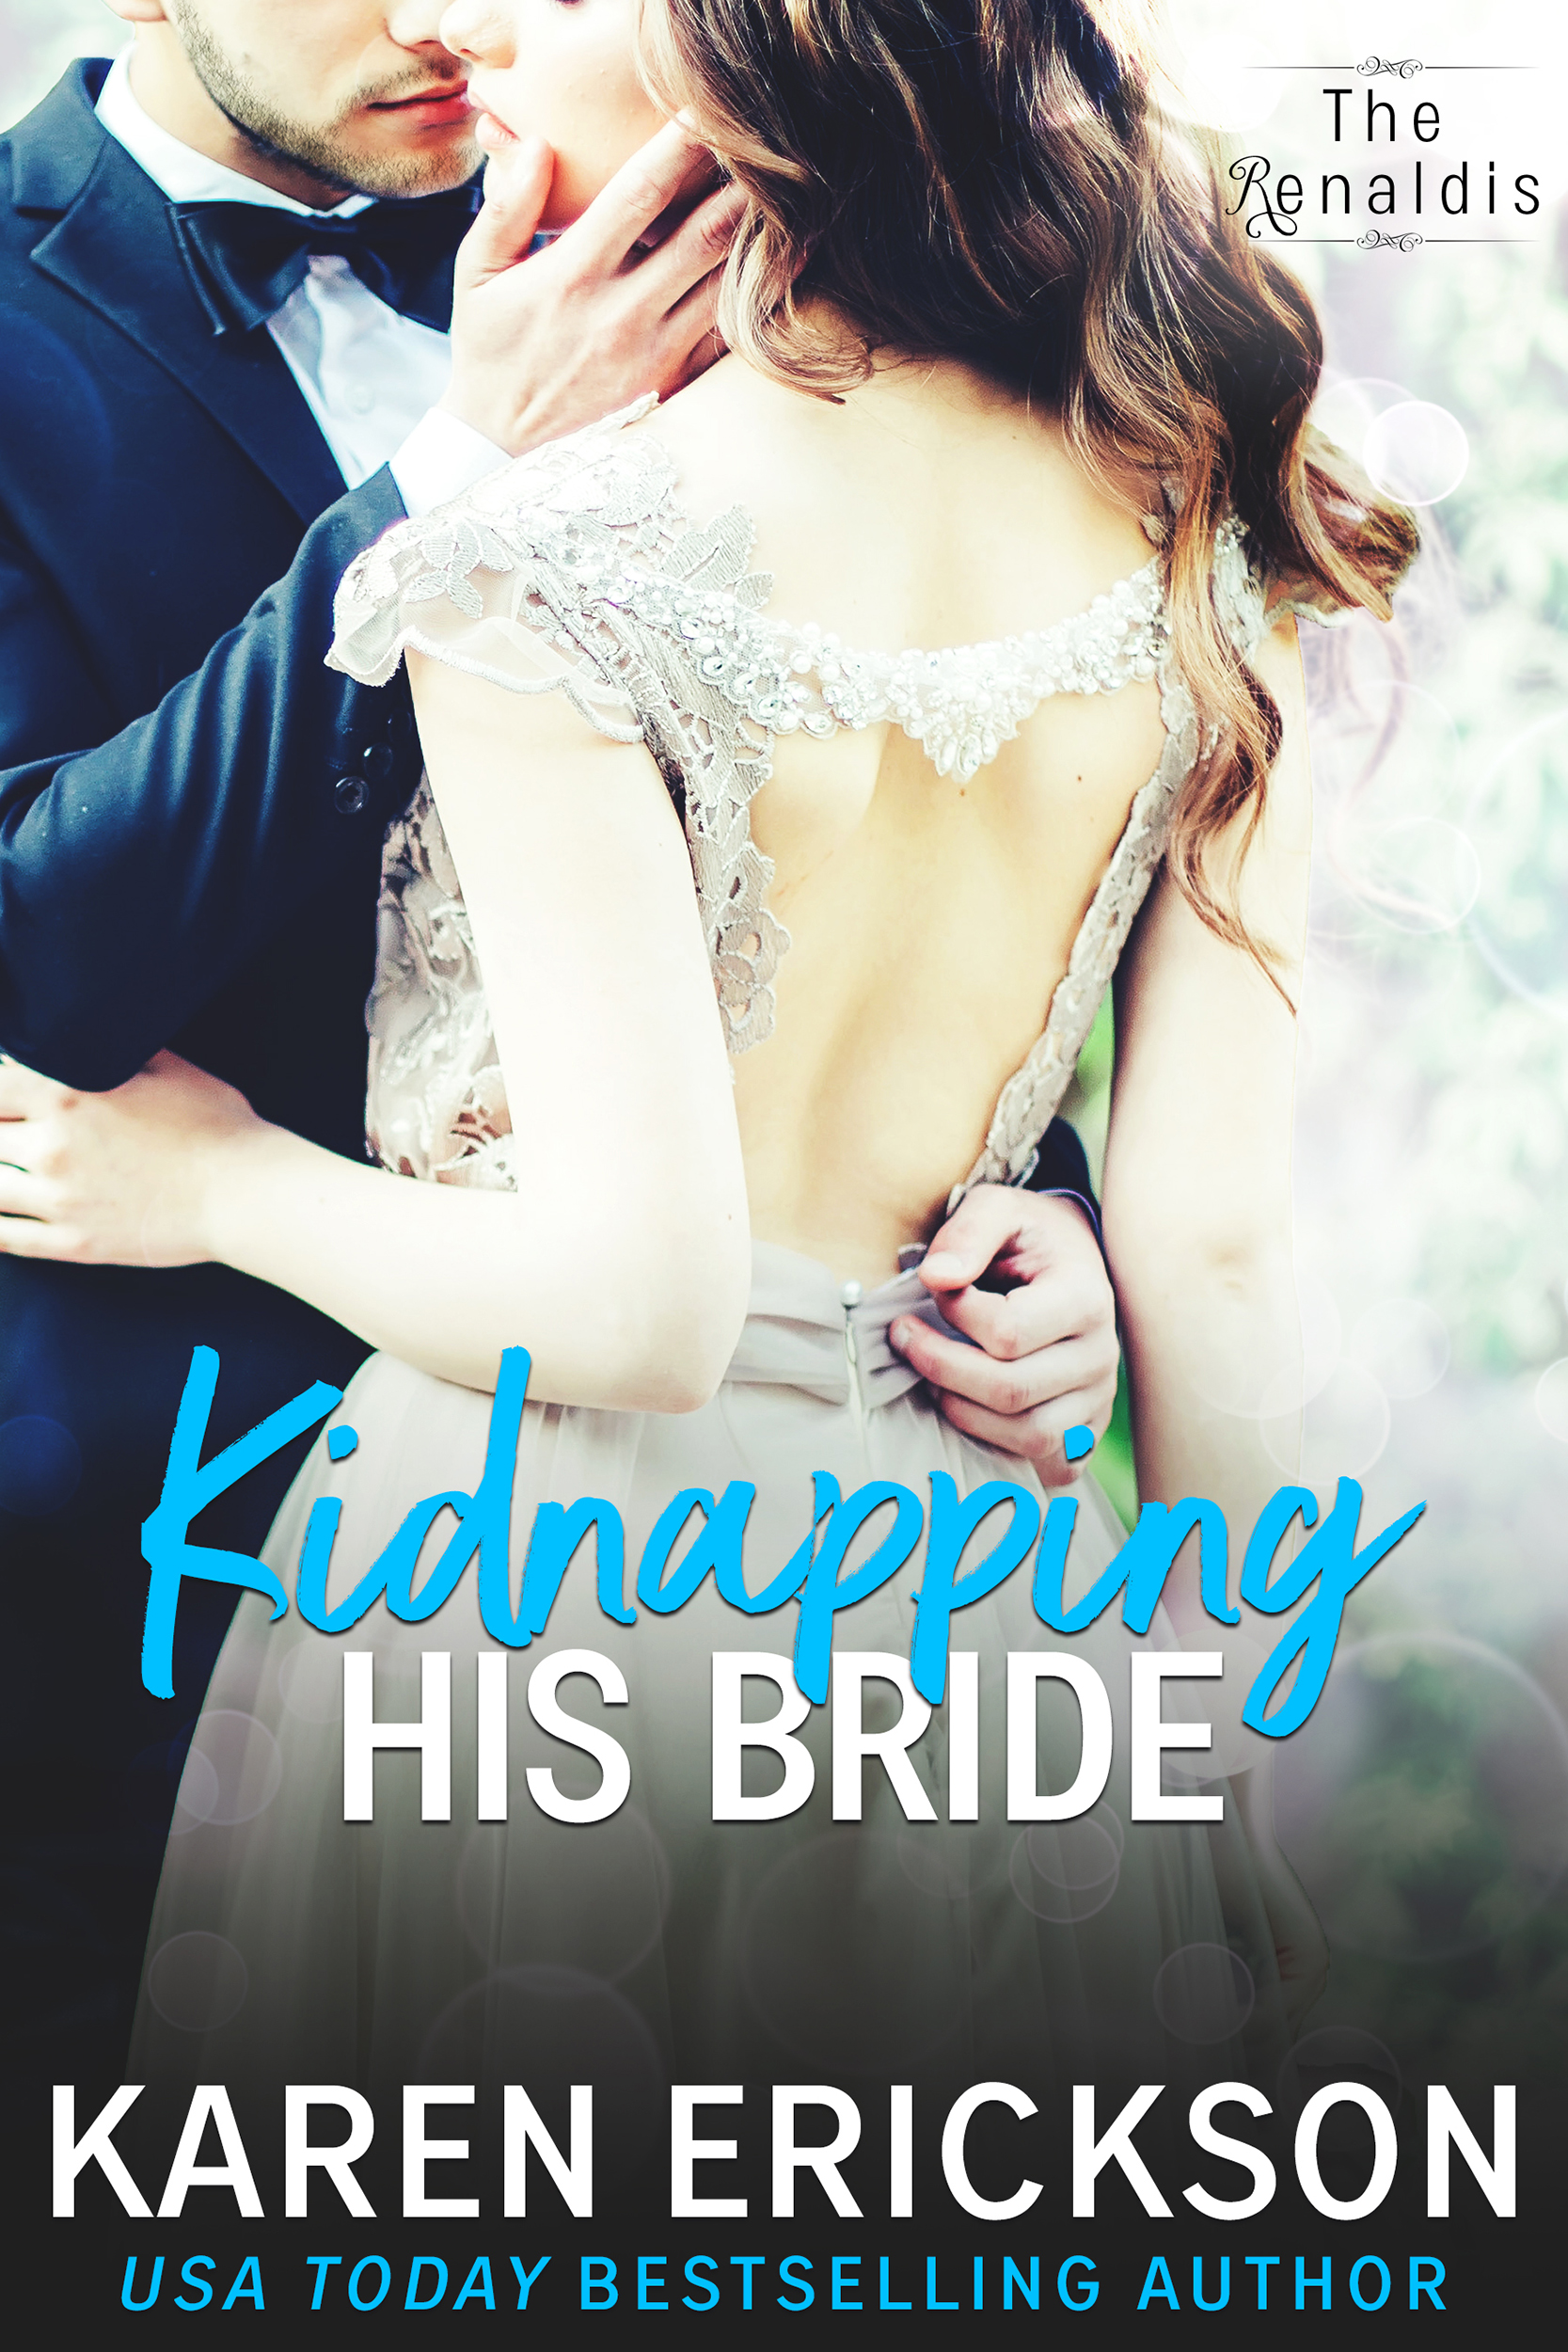 Kidnapping His Bride - The Renaldis, Book 2Amazon •B&N •iBooks •Kobo • GooglePlayCatch her if you can…Rafael Renaldi has always been in love with the woman his family arranged a marriage with. His memory of their single, searing kiss has sustained him until the time is right.Catalina Campioni does not think the time is right. A wedding and babies sounds boring—she craves adventure.When Rafe discovers what his intended truly wants, he does something crazy.He kidnaps her.If she wants adventure, he'll show it to her—along with every ounce of his legendary, womanizing charm.But he's not the only one playing a dangerous game.And even as Rafe and Cat fall in love, they may end up paying the ultimate price.Amazon •B&N •iBooks •Kobo • GooglePlay